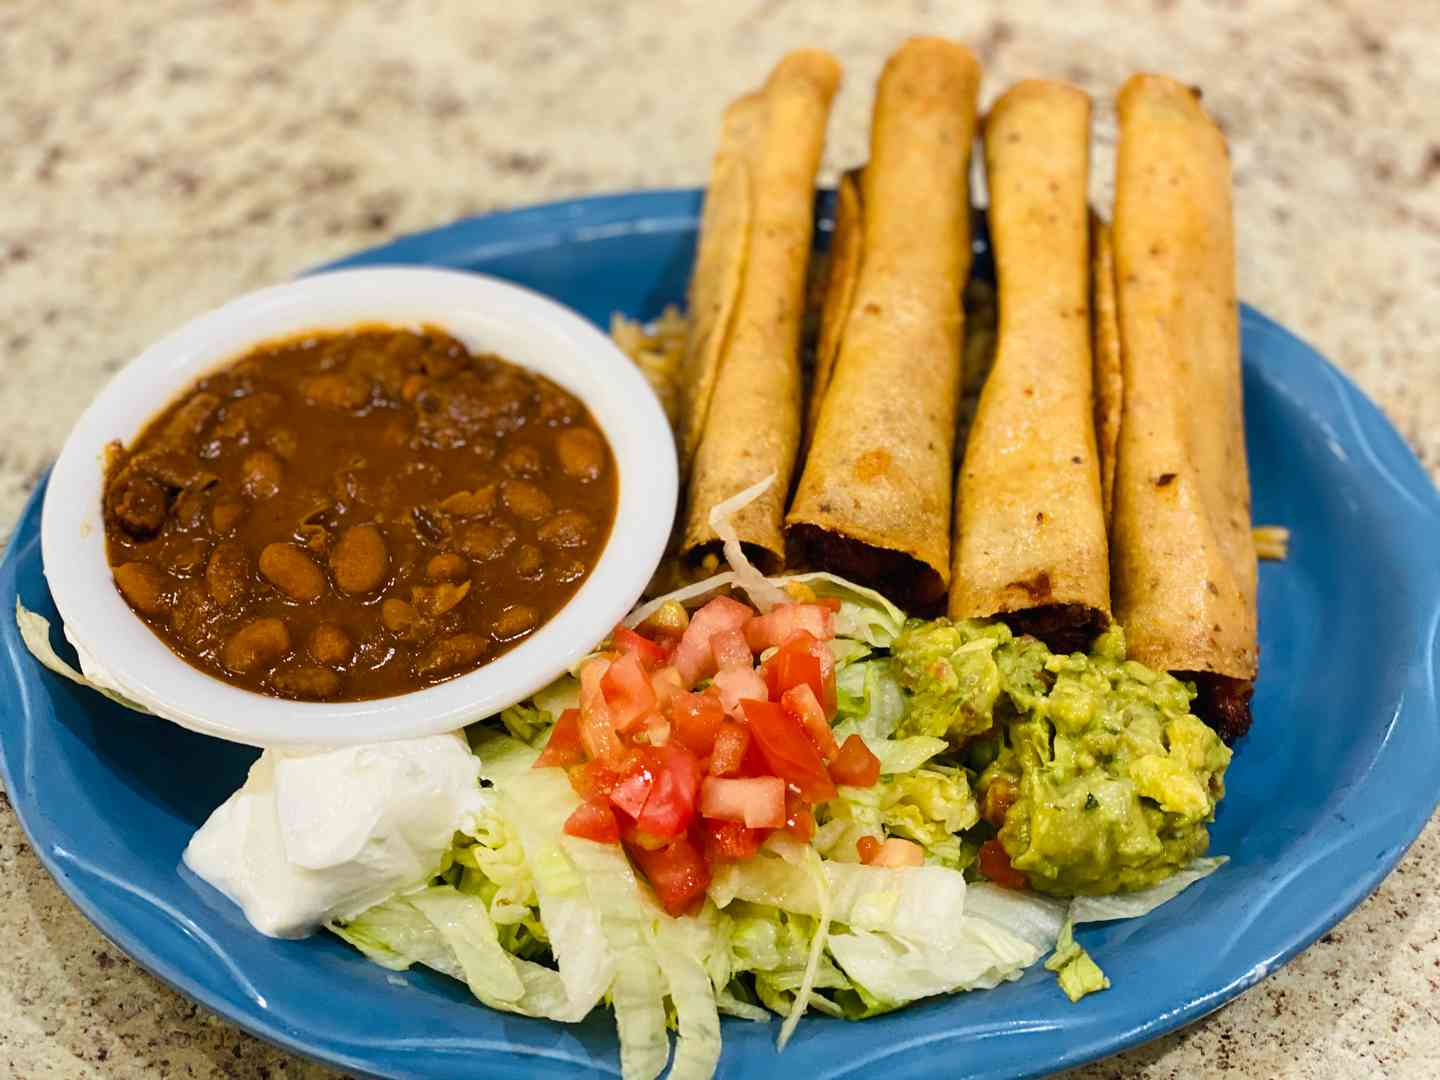 Chicken or Beef Flautas